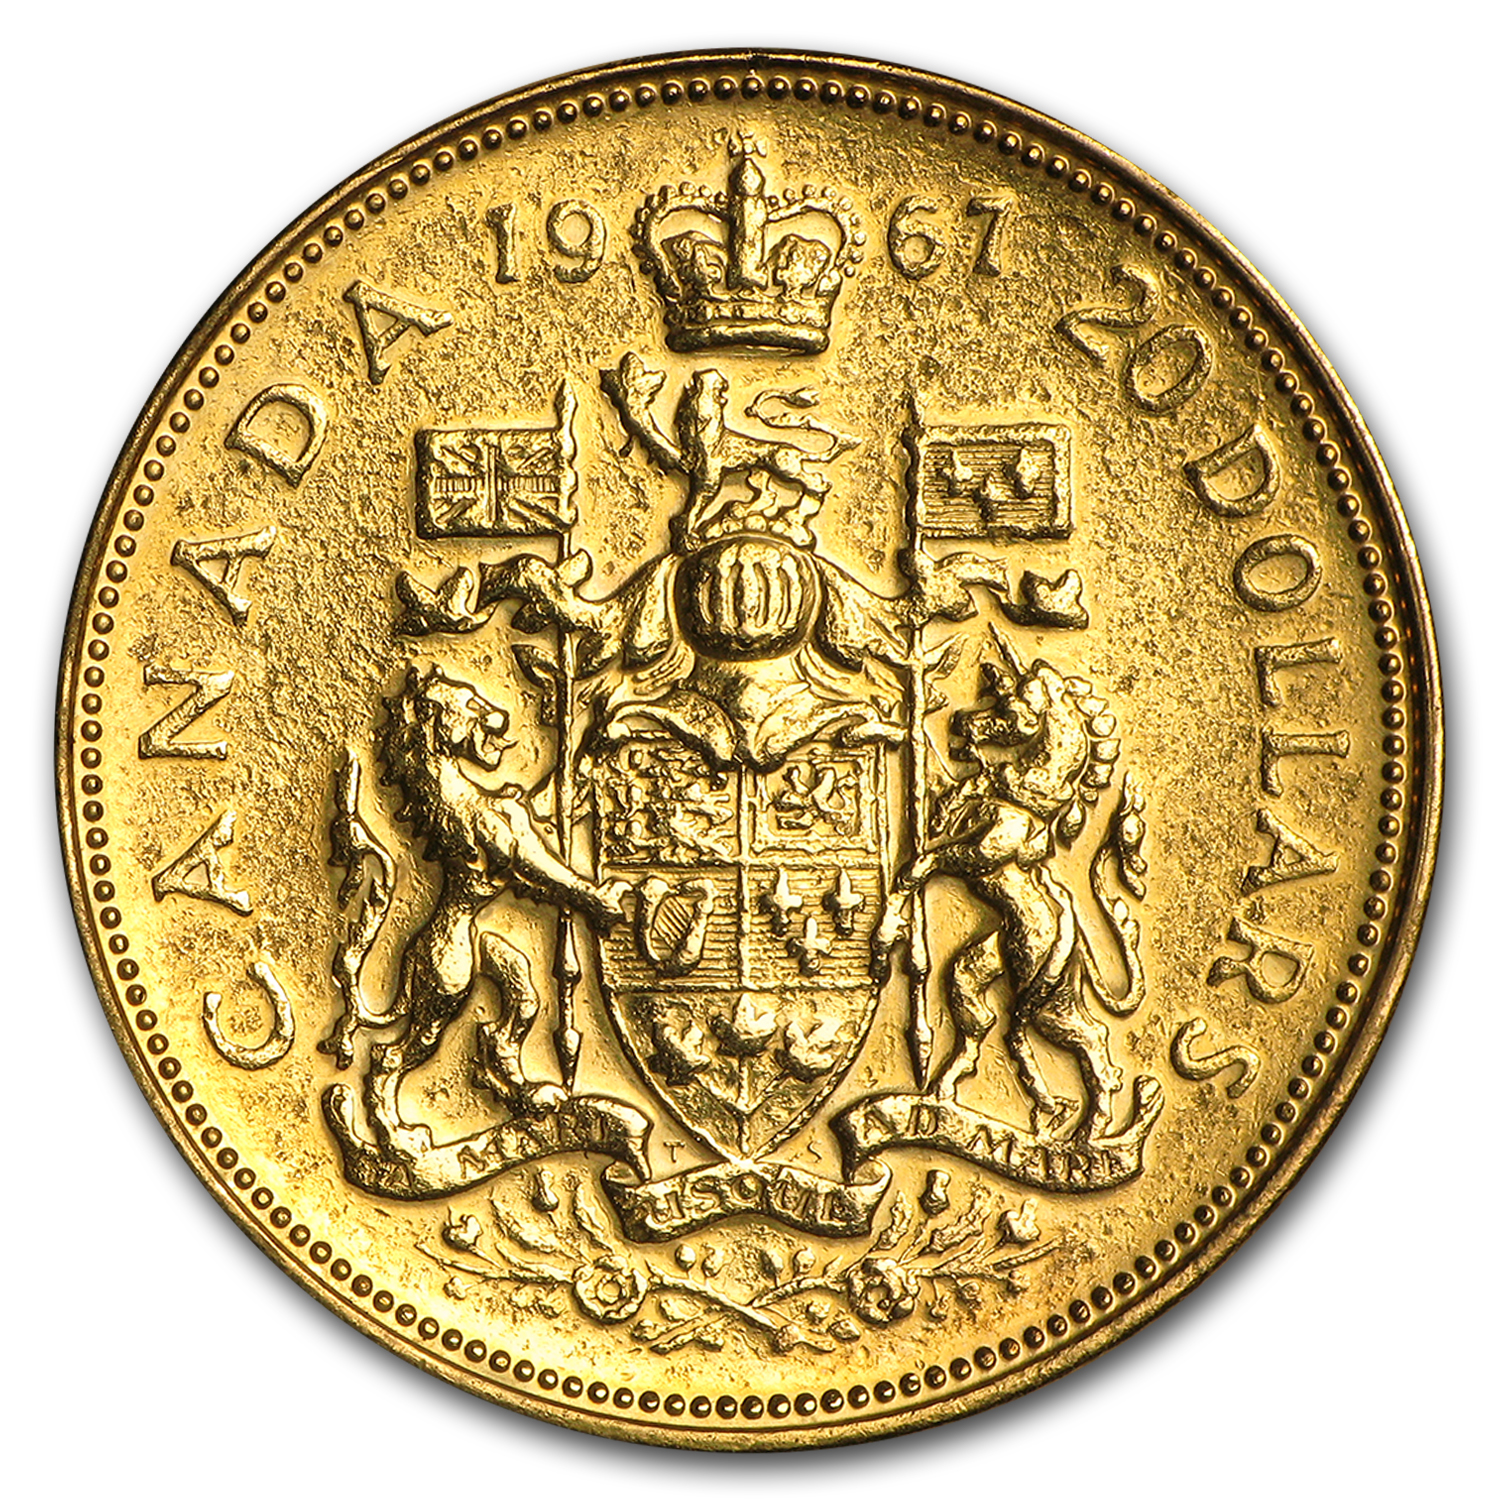 Canada 1967 Proof Gold $20 .5288 AGW (Abrasions)